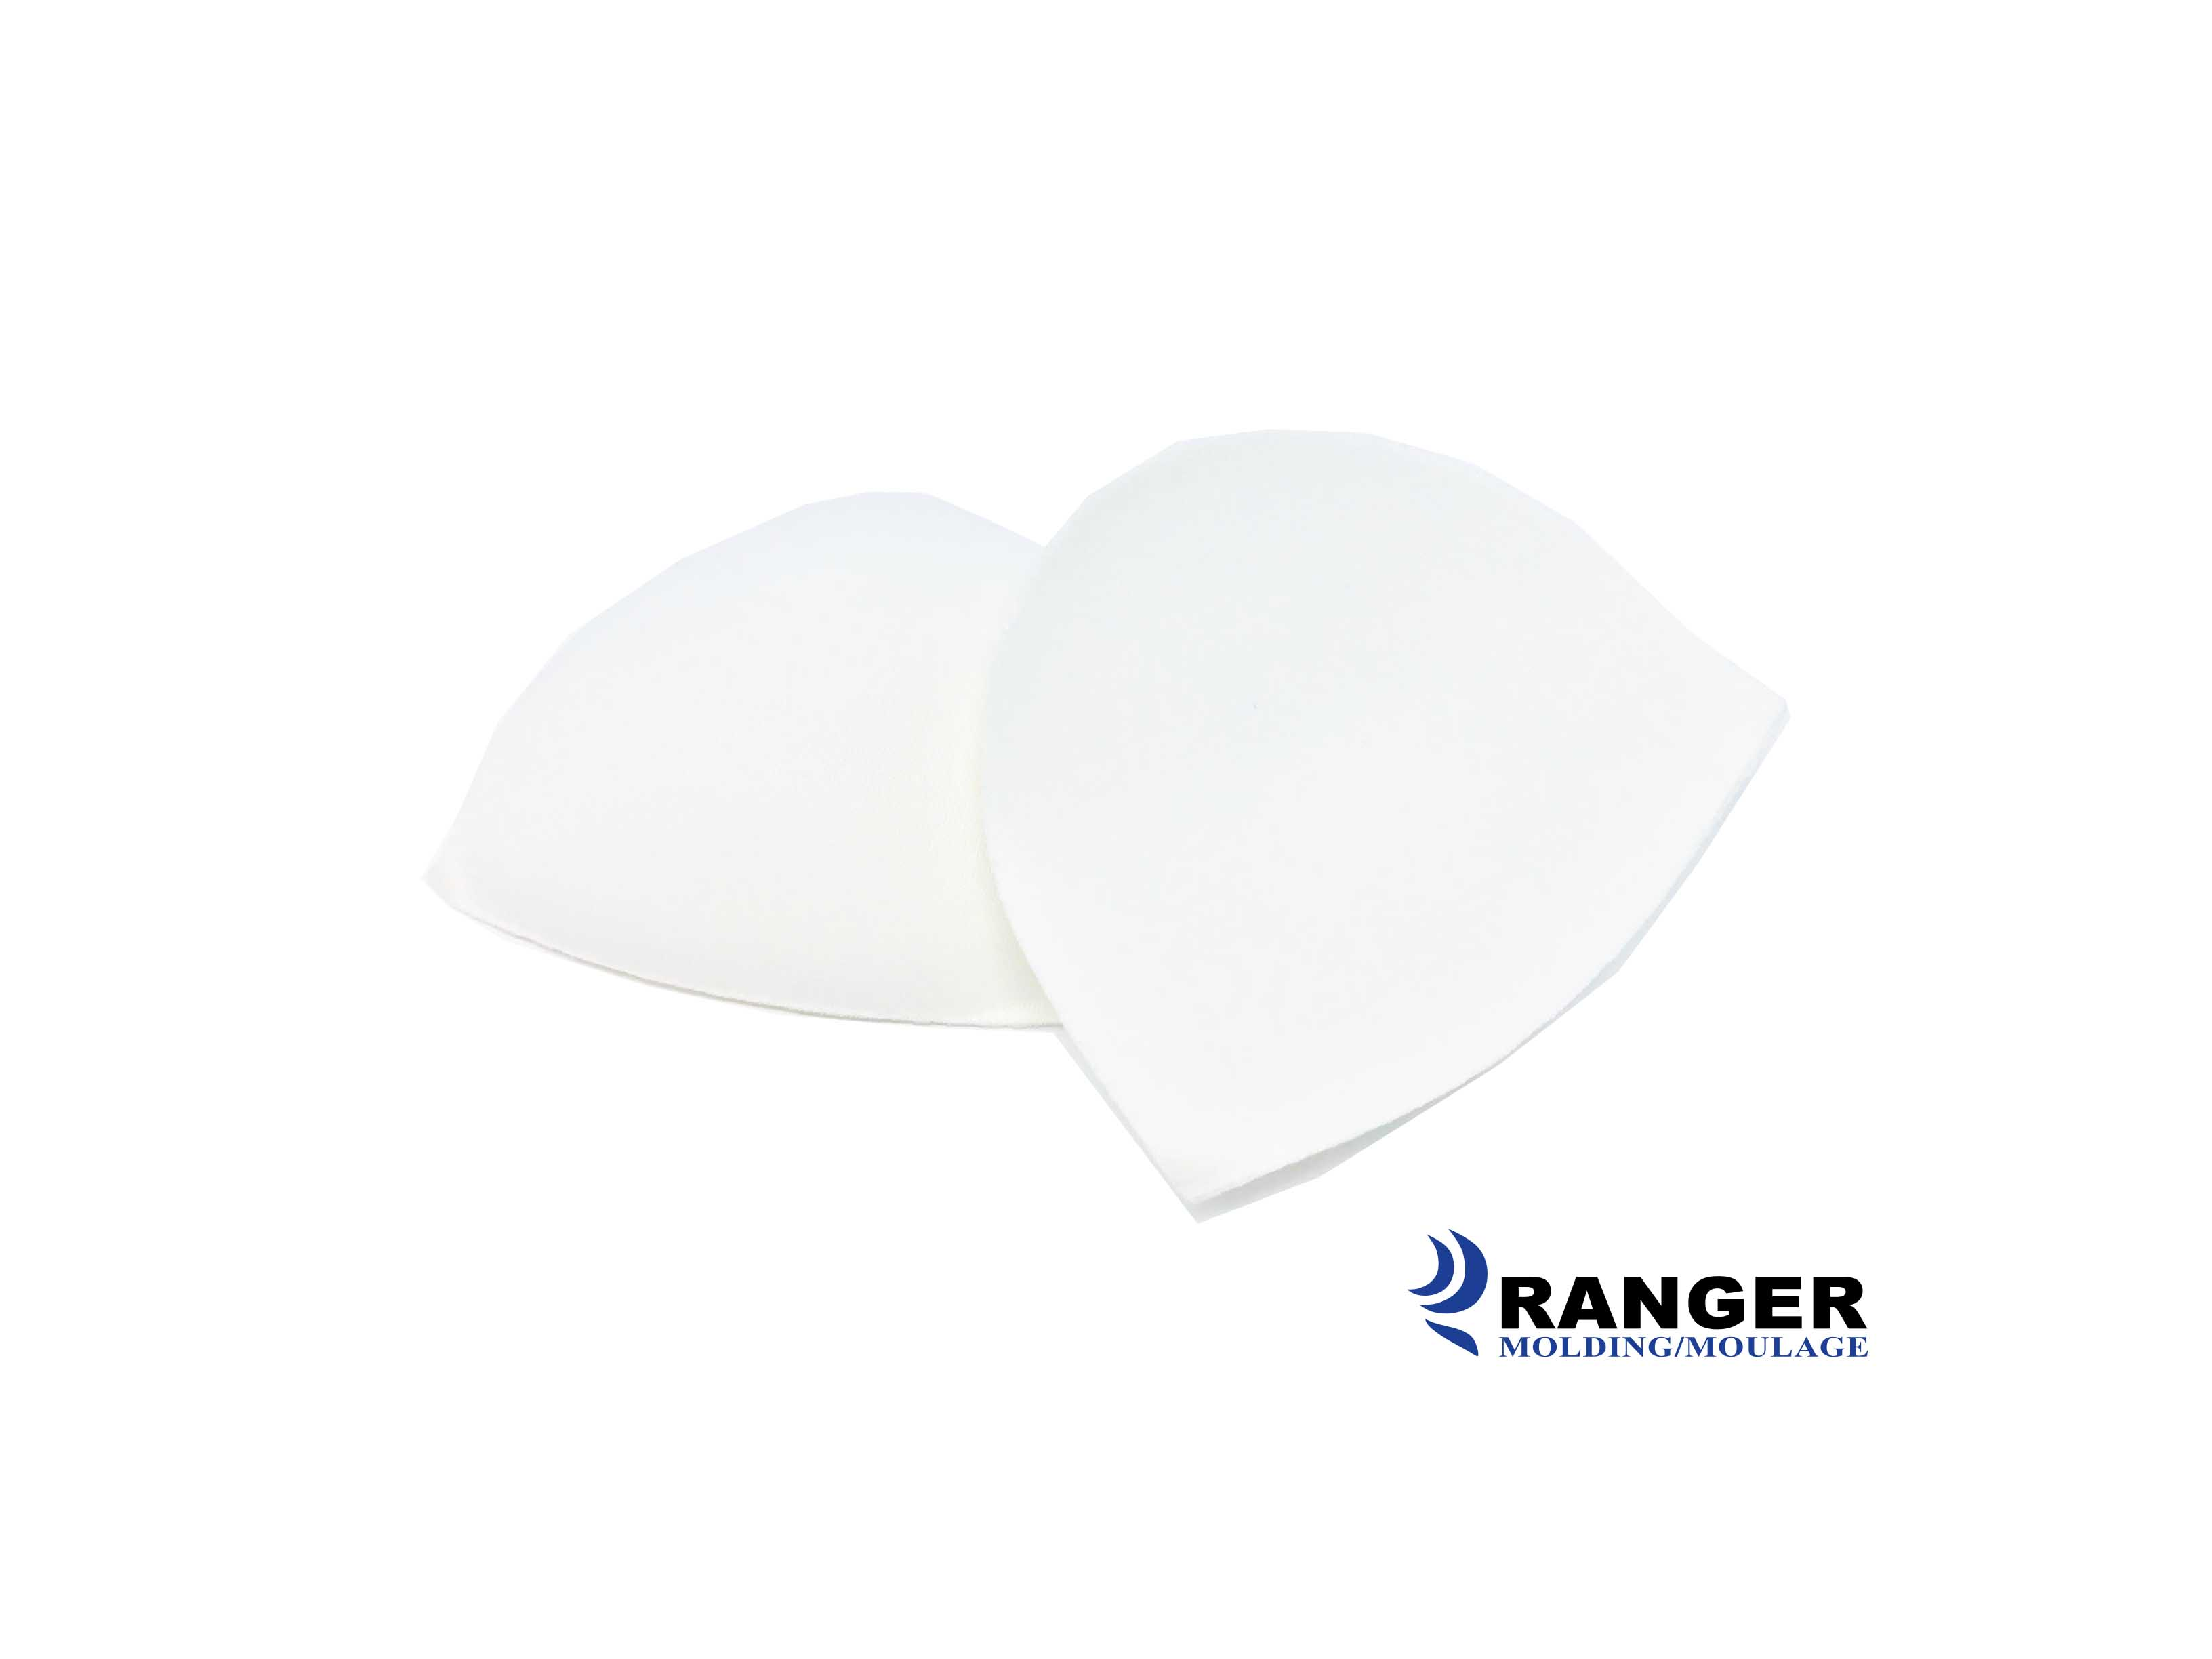 Swimsuit foam Cup Insert - Z11MP1 - Ranger Molding